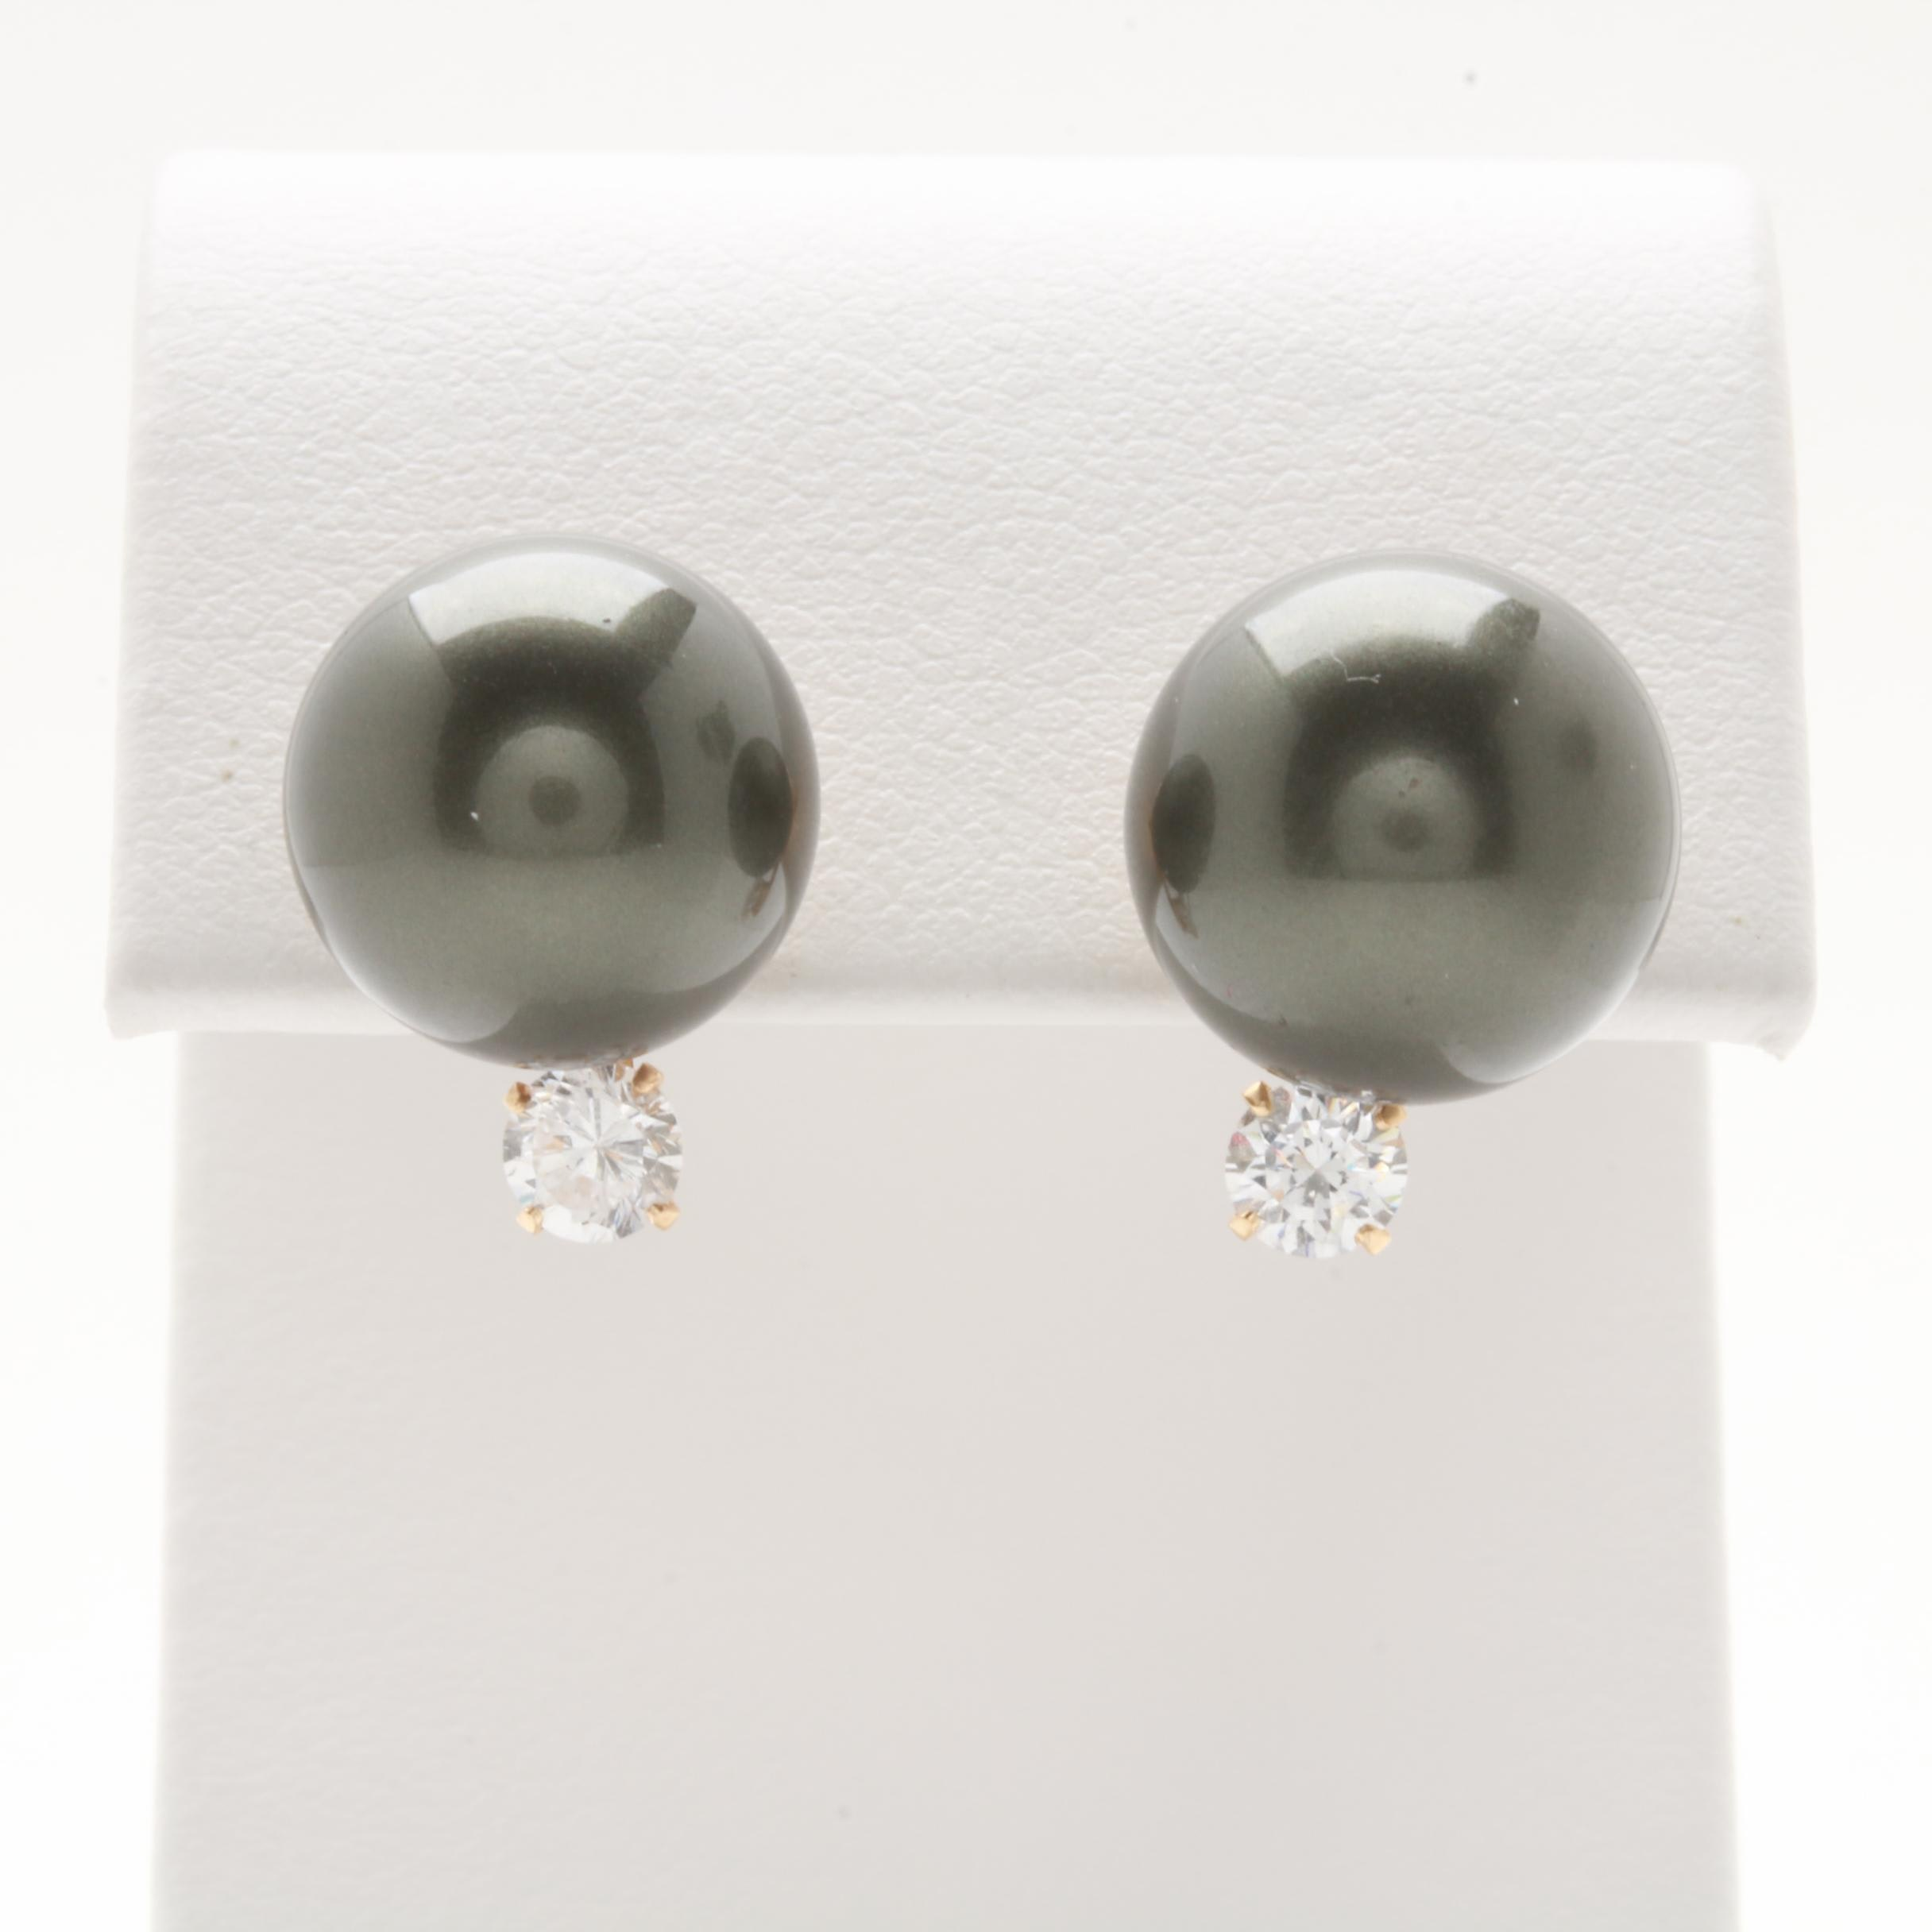 14K Yellow Gold Synthetic Pearl and Cubic Zirconia Earrings